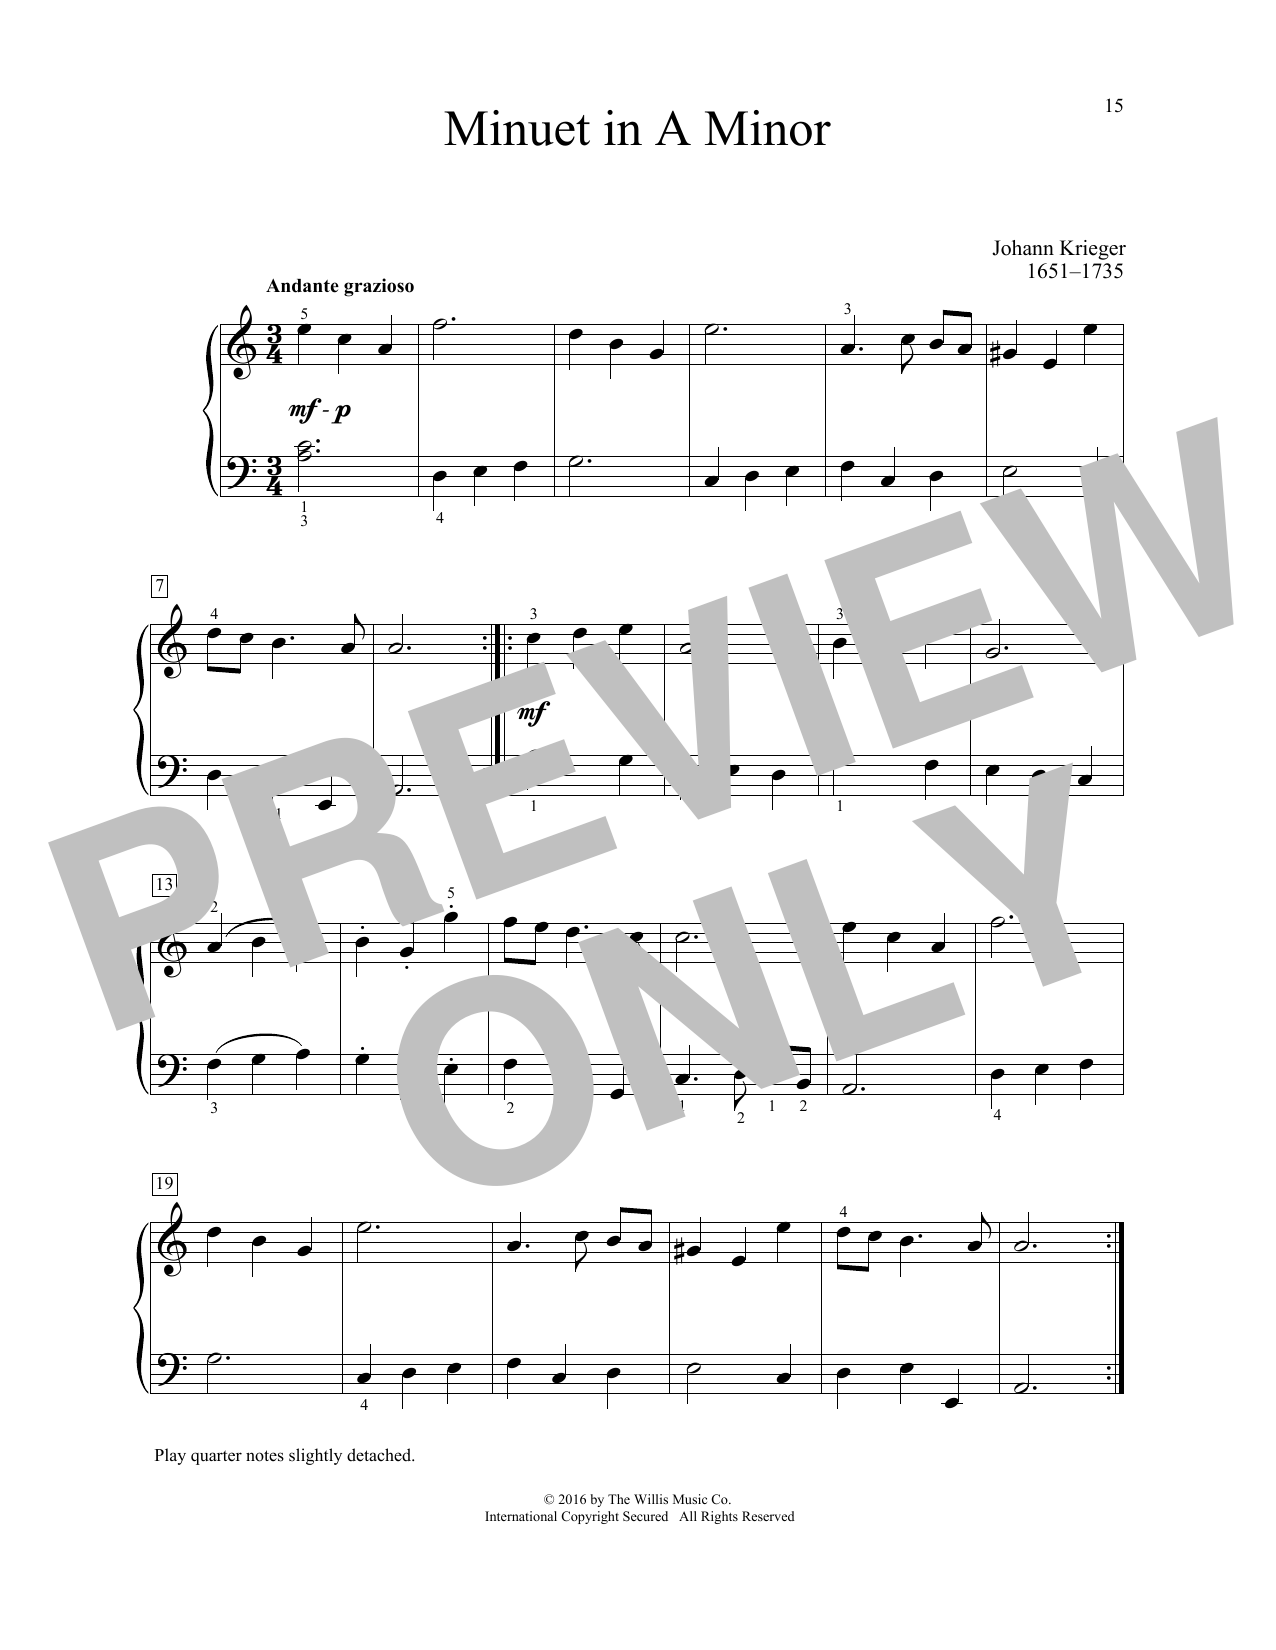 Johann Krieger Minuet In A Minor sheet music notes and chords. Download Printable PDF.